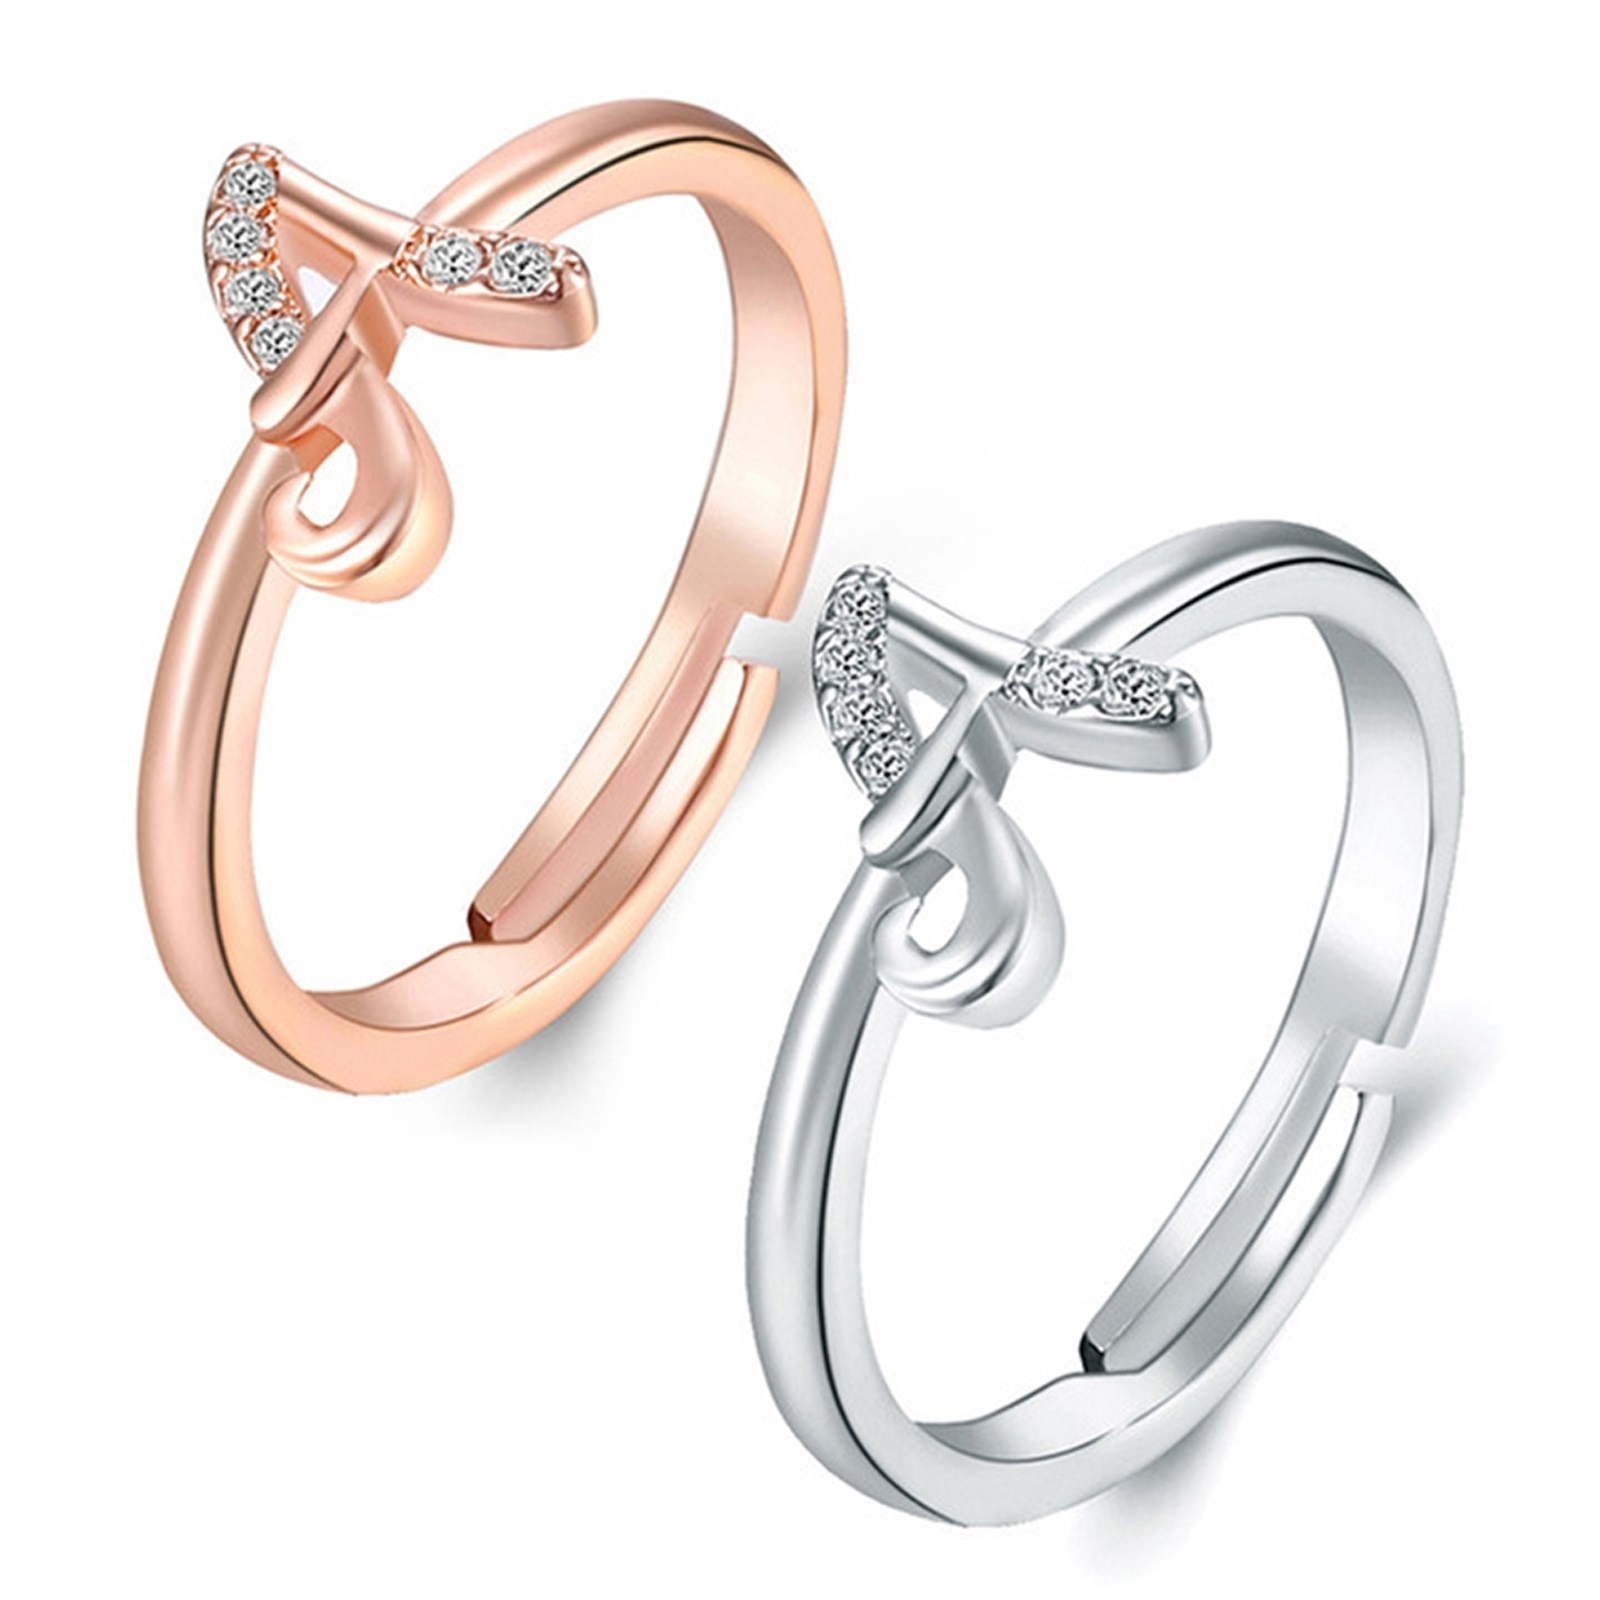 2 Pack Cubic Zirconia Initial Rings Only $7.99 w/ Free Shipping